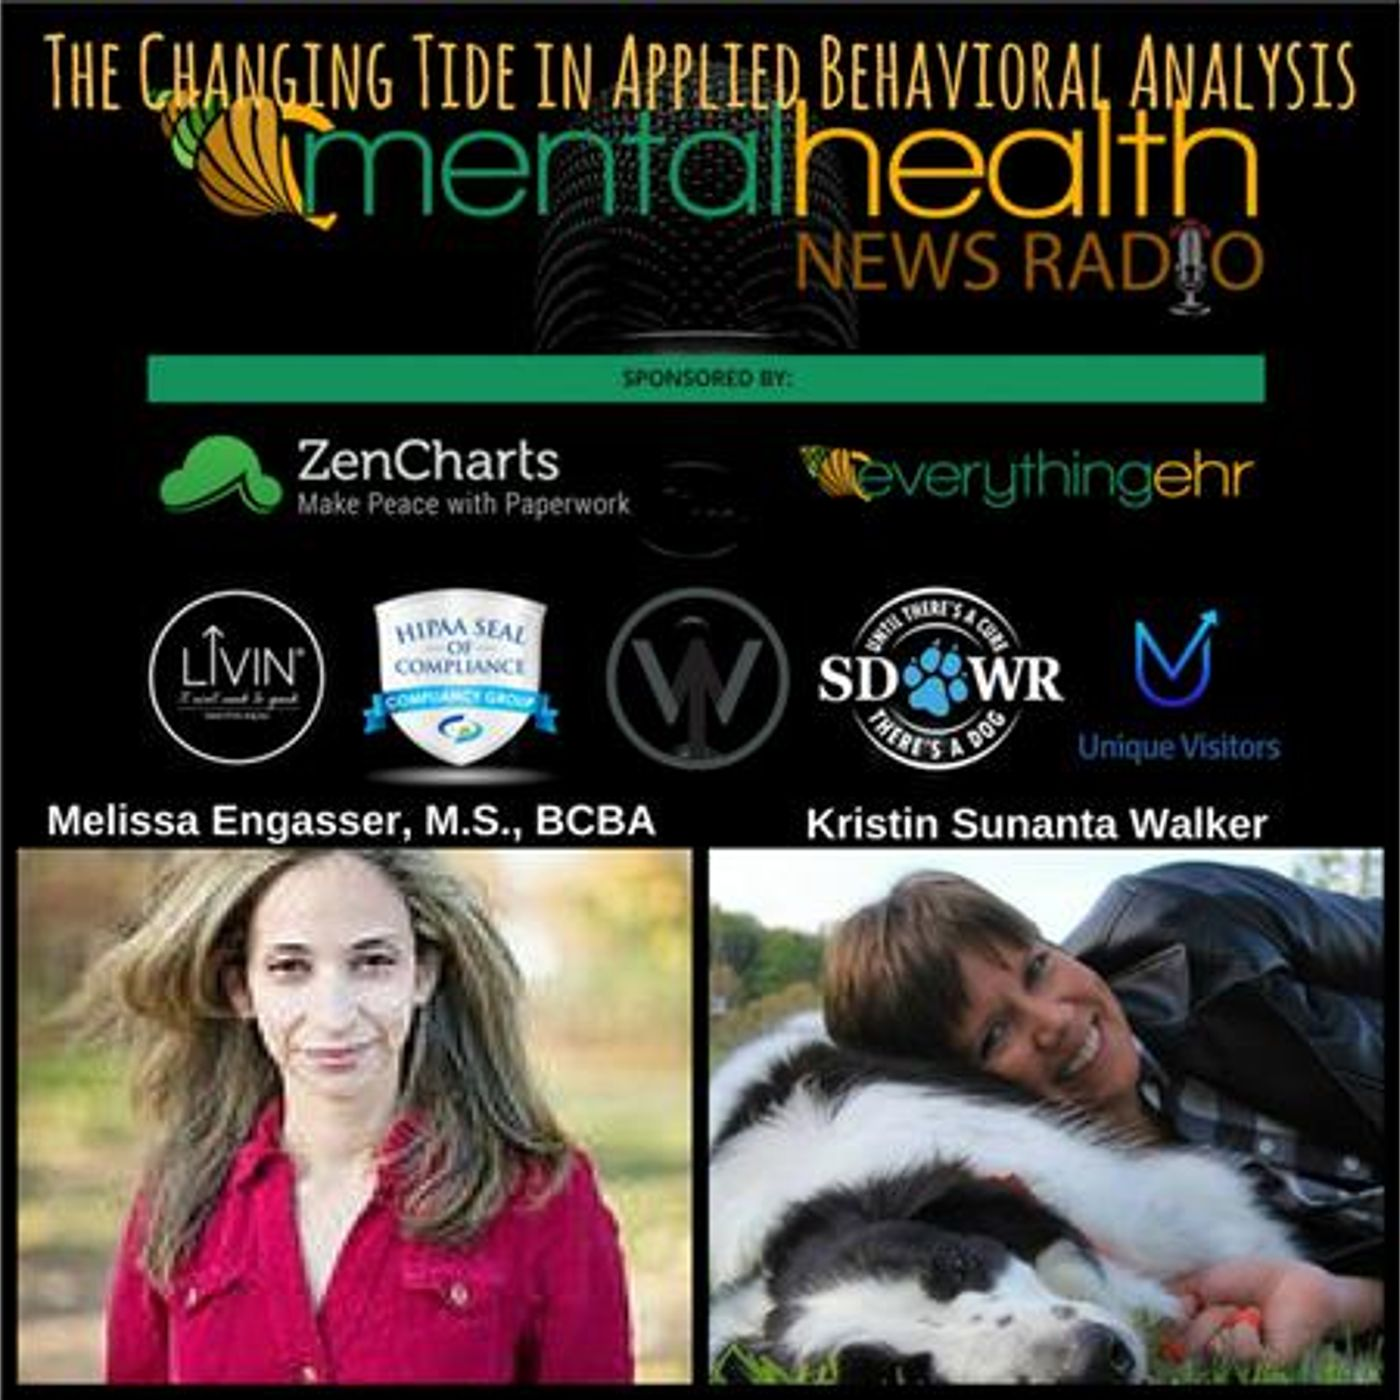 Mental Health News Radio - The Changing Tide in Applied Behavioral Analysis with Melissa Engasser